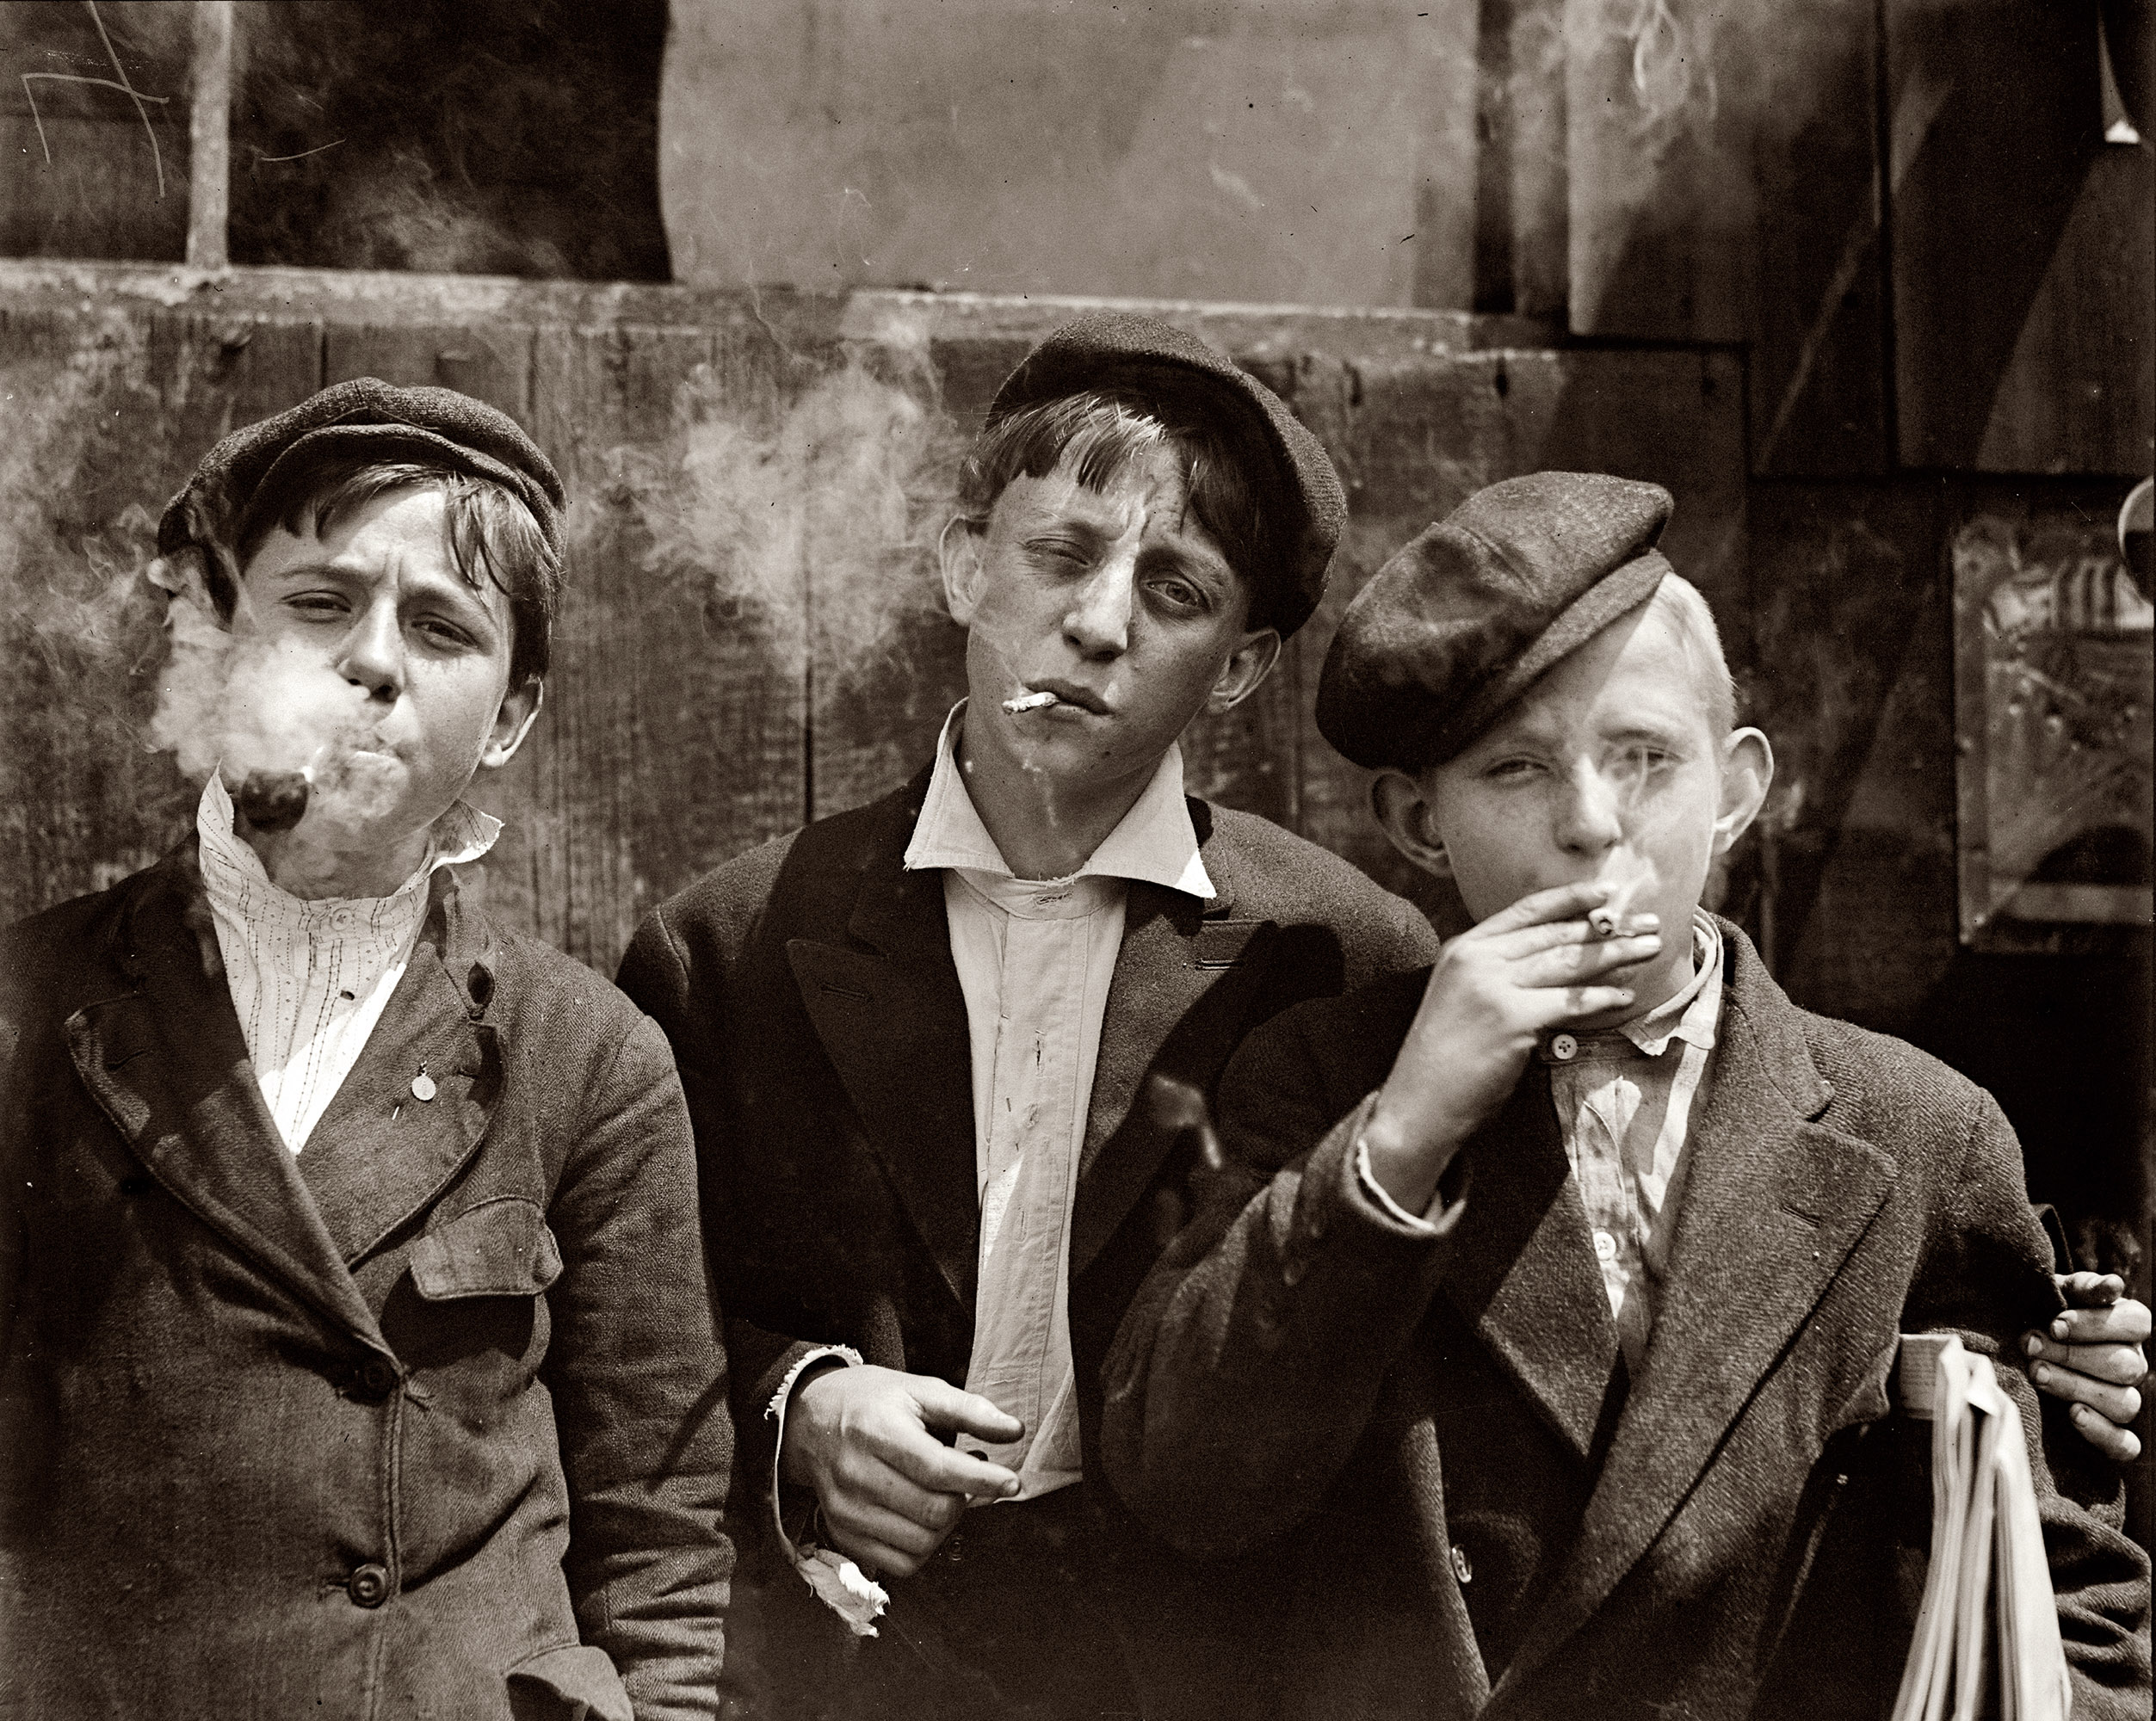 11 a.m. Monday, May 9, 1910.  Newsies at Skeeter's Branch, Jefferson near Franklin, St. Louis.